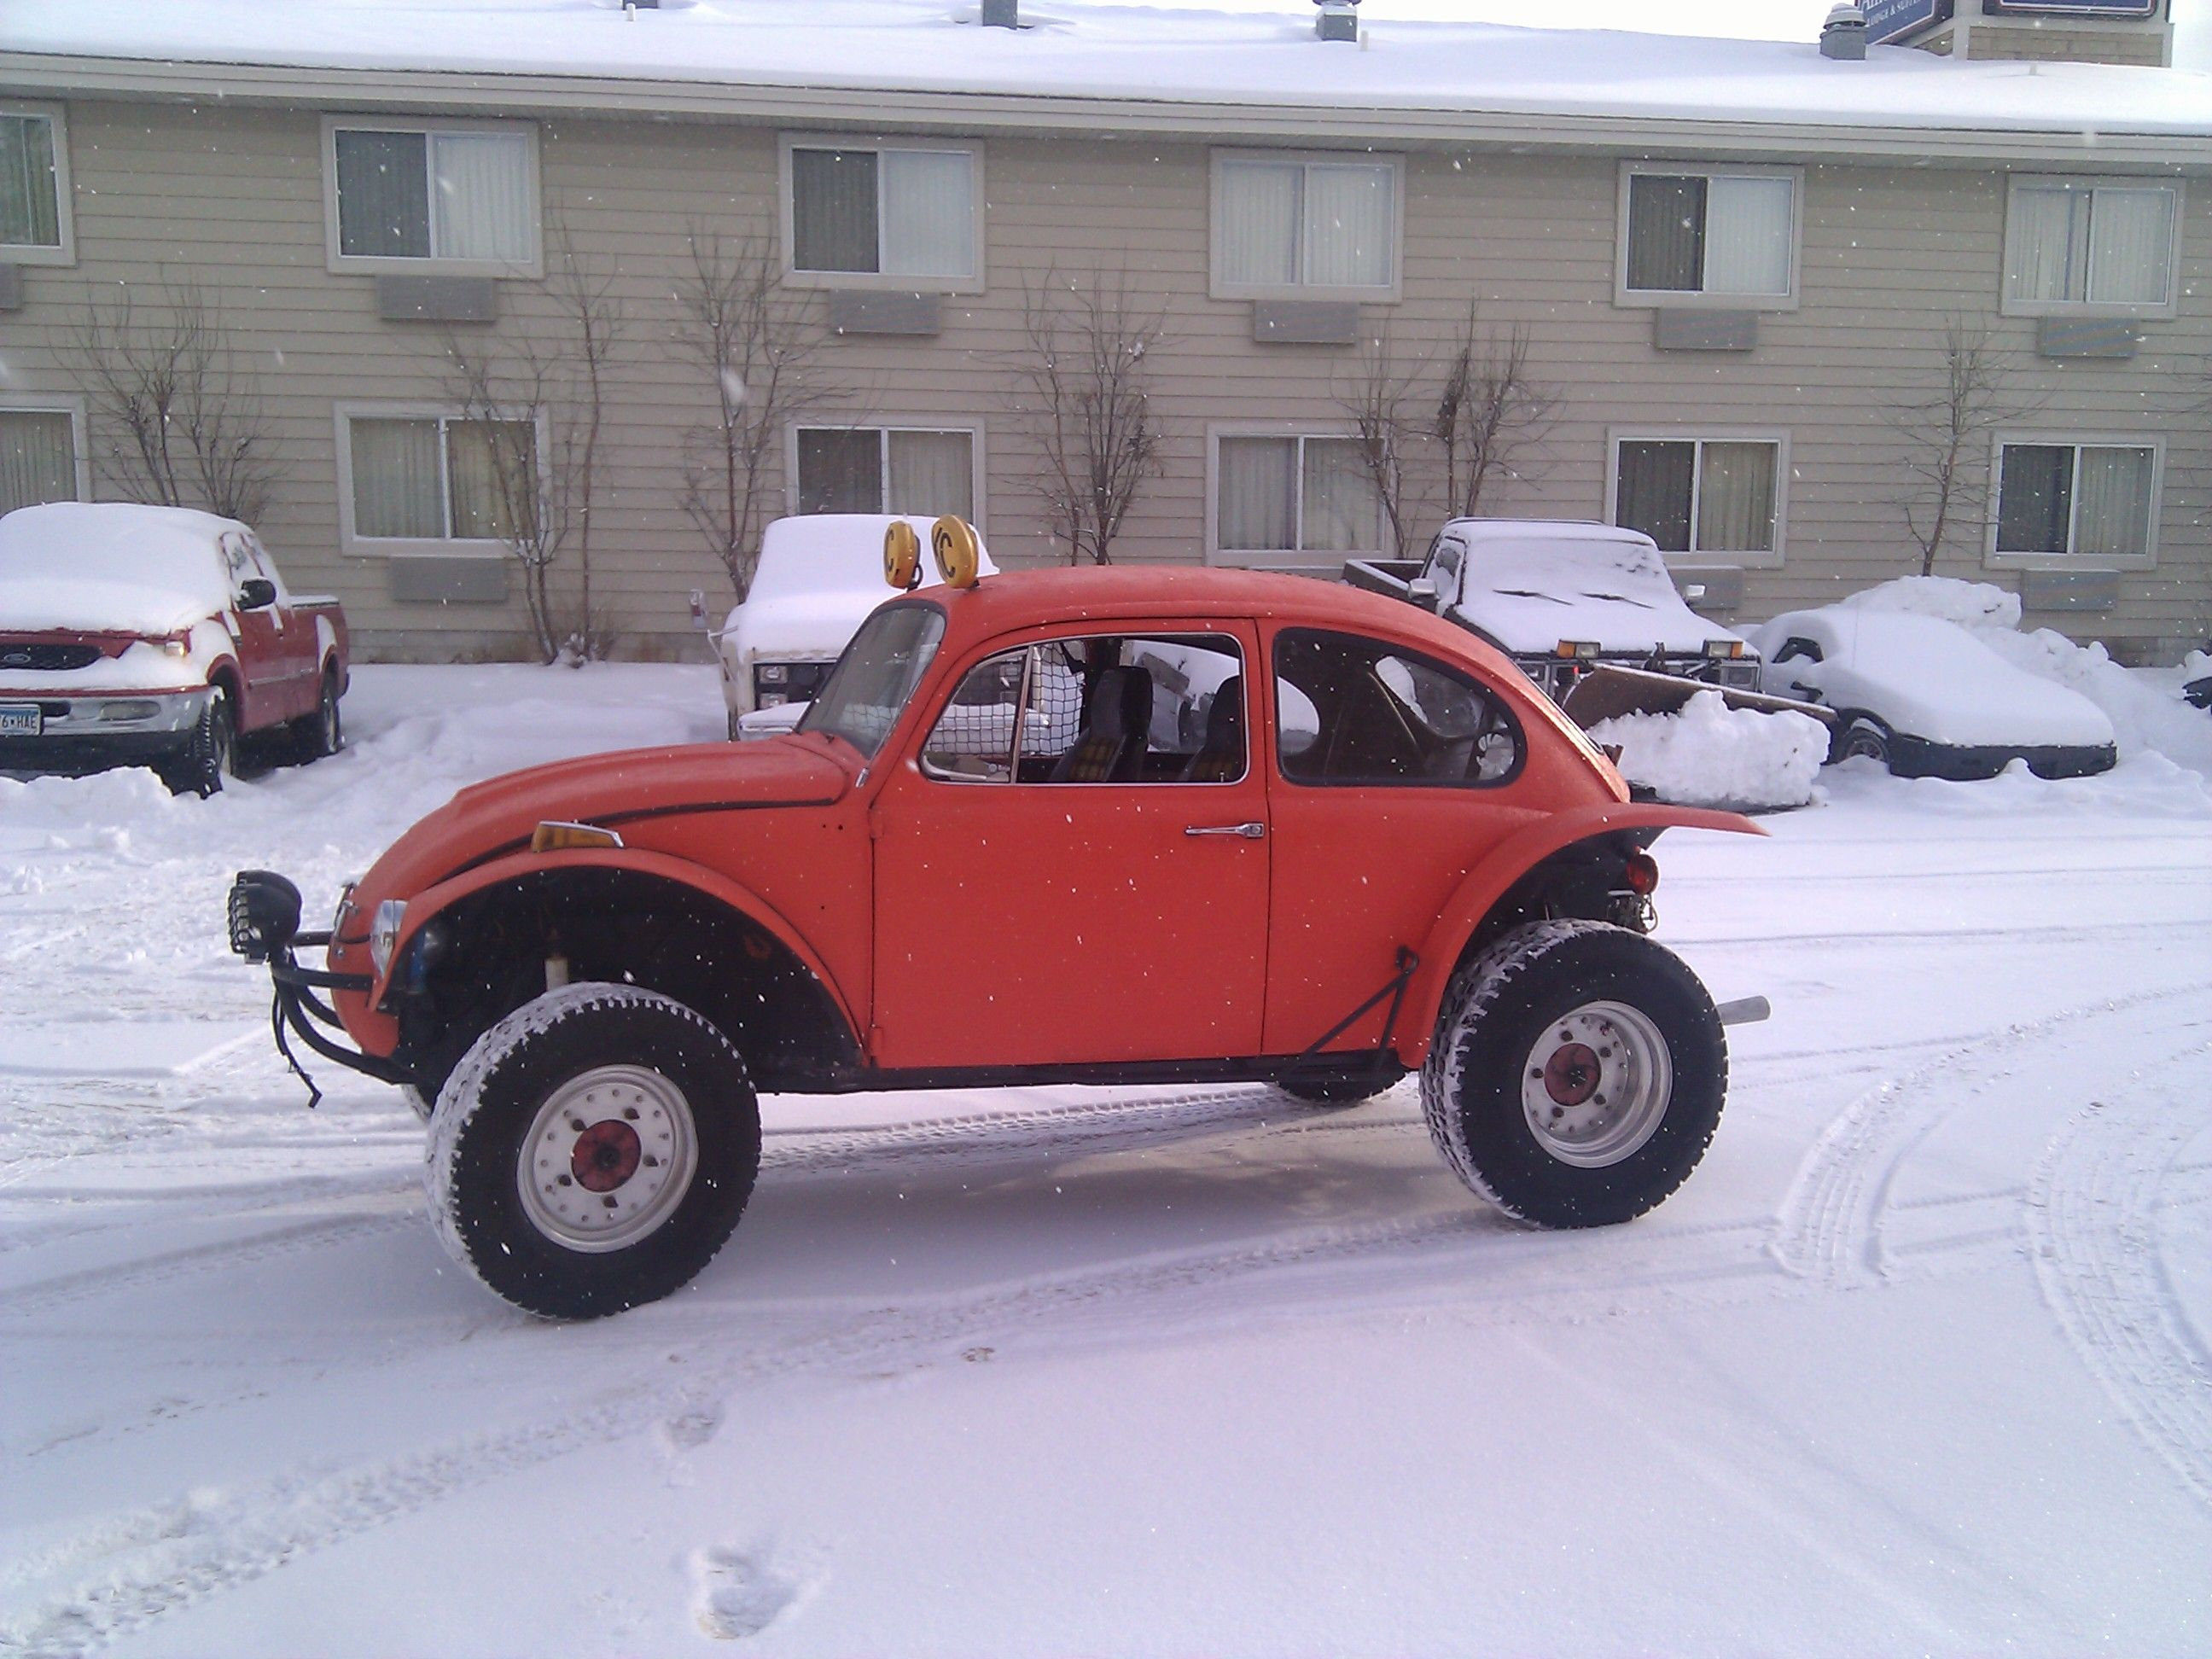 Baja Bug A Stock Is Great In The Snow Highly Modified With Off Road Tires And Engine Terrible Get On Throttle At All